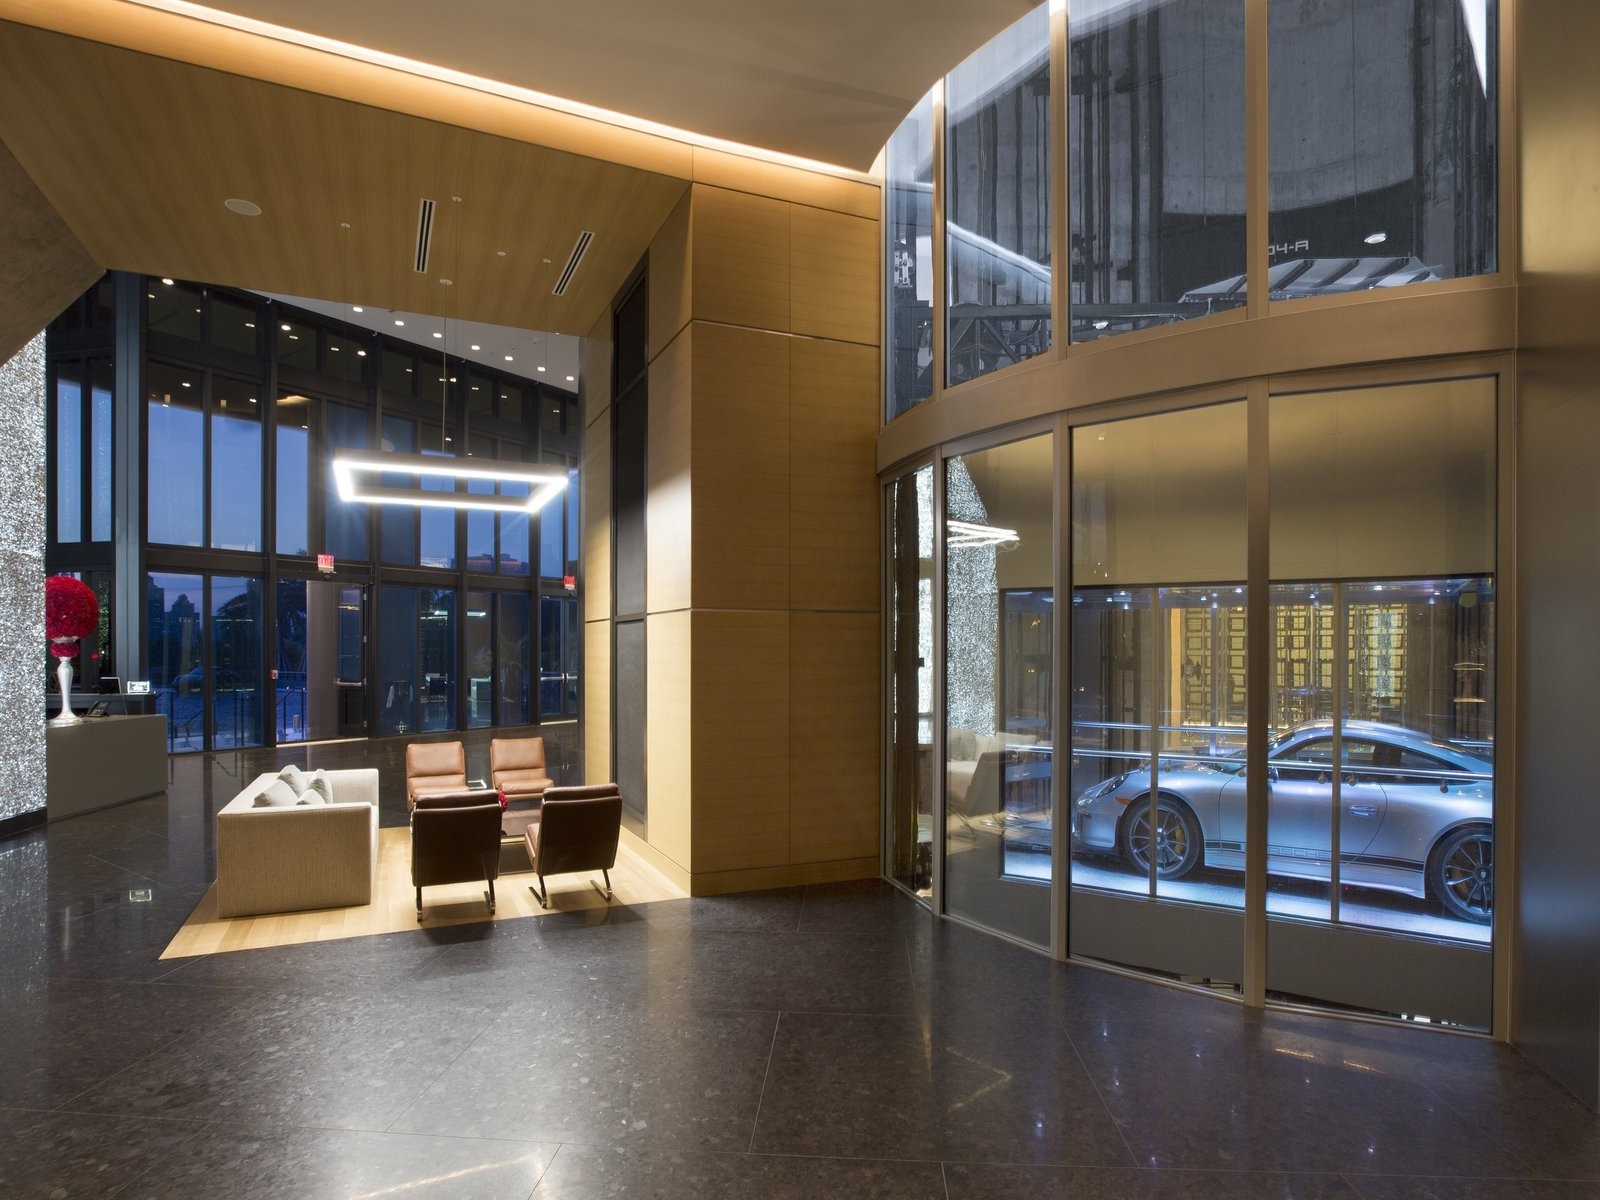 The project architect was Sieger Suarez, with interior design by Michael Wolk Design Associates and Porsche Design. Here, a glass car observatory allows a glimpse of cars as they float by on the Dezervator, named for the developer Gil Dezer.  Photo 3 of 11 in Porsche Design's Lavish Residential Tower in Miami Lifts Residents and Cars Sky High